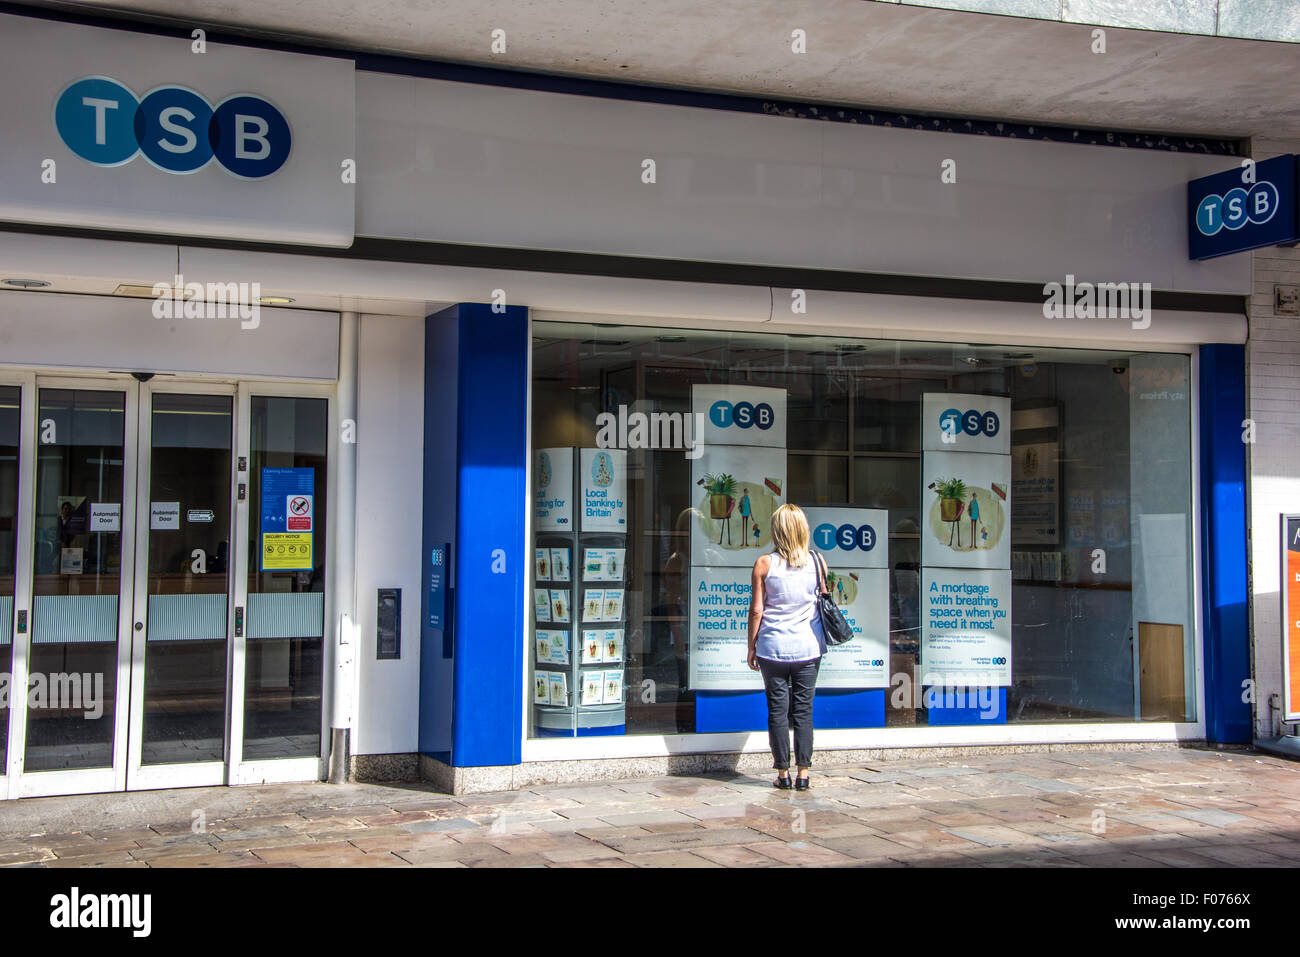 Magnificent Bulldog Security Remote Starter With Keyless Entry Tiny Guitar Pickup Installation Round Security Bulldog How To Wire Guitar Old 5 Way Switch Telecaster BrightAuto Electrical Wire A Woman Looking In The Window Of The TSB Bank On High Street Stock ..